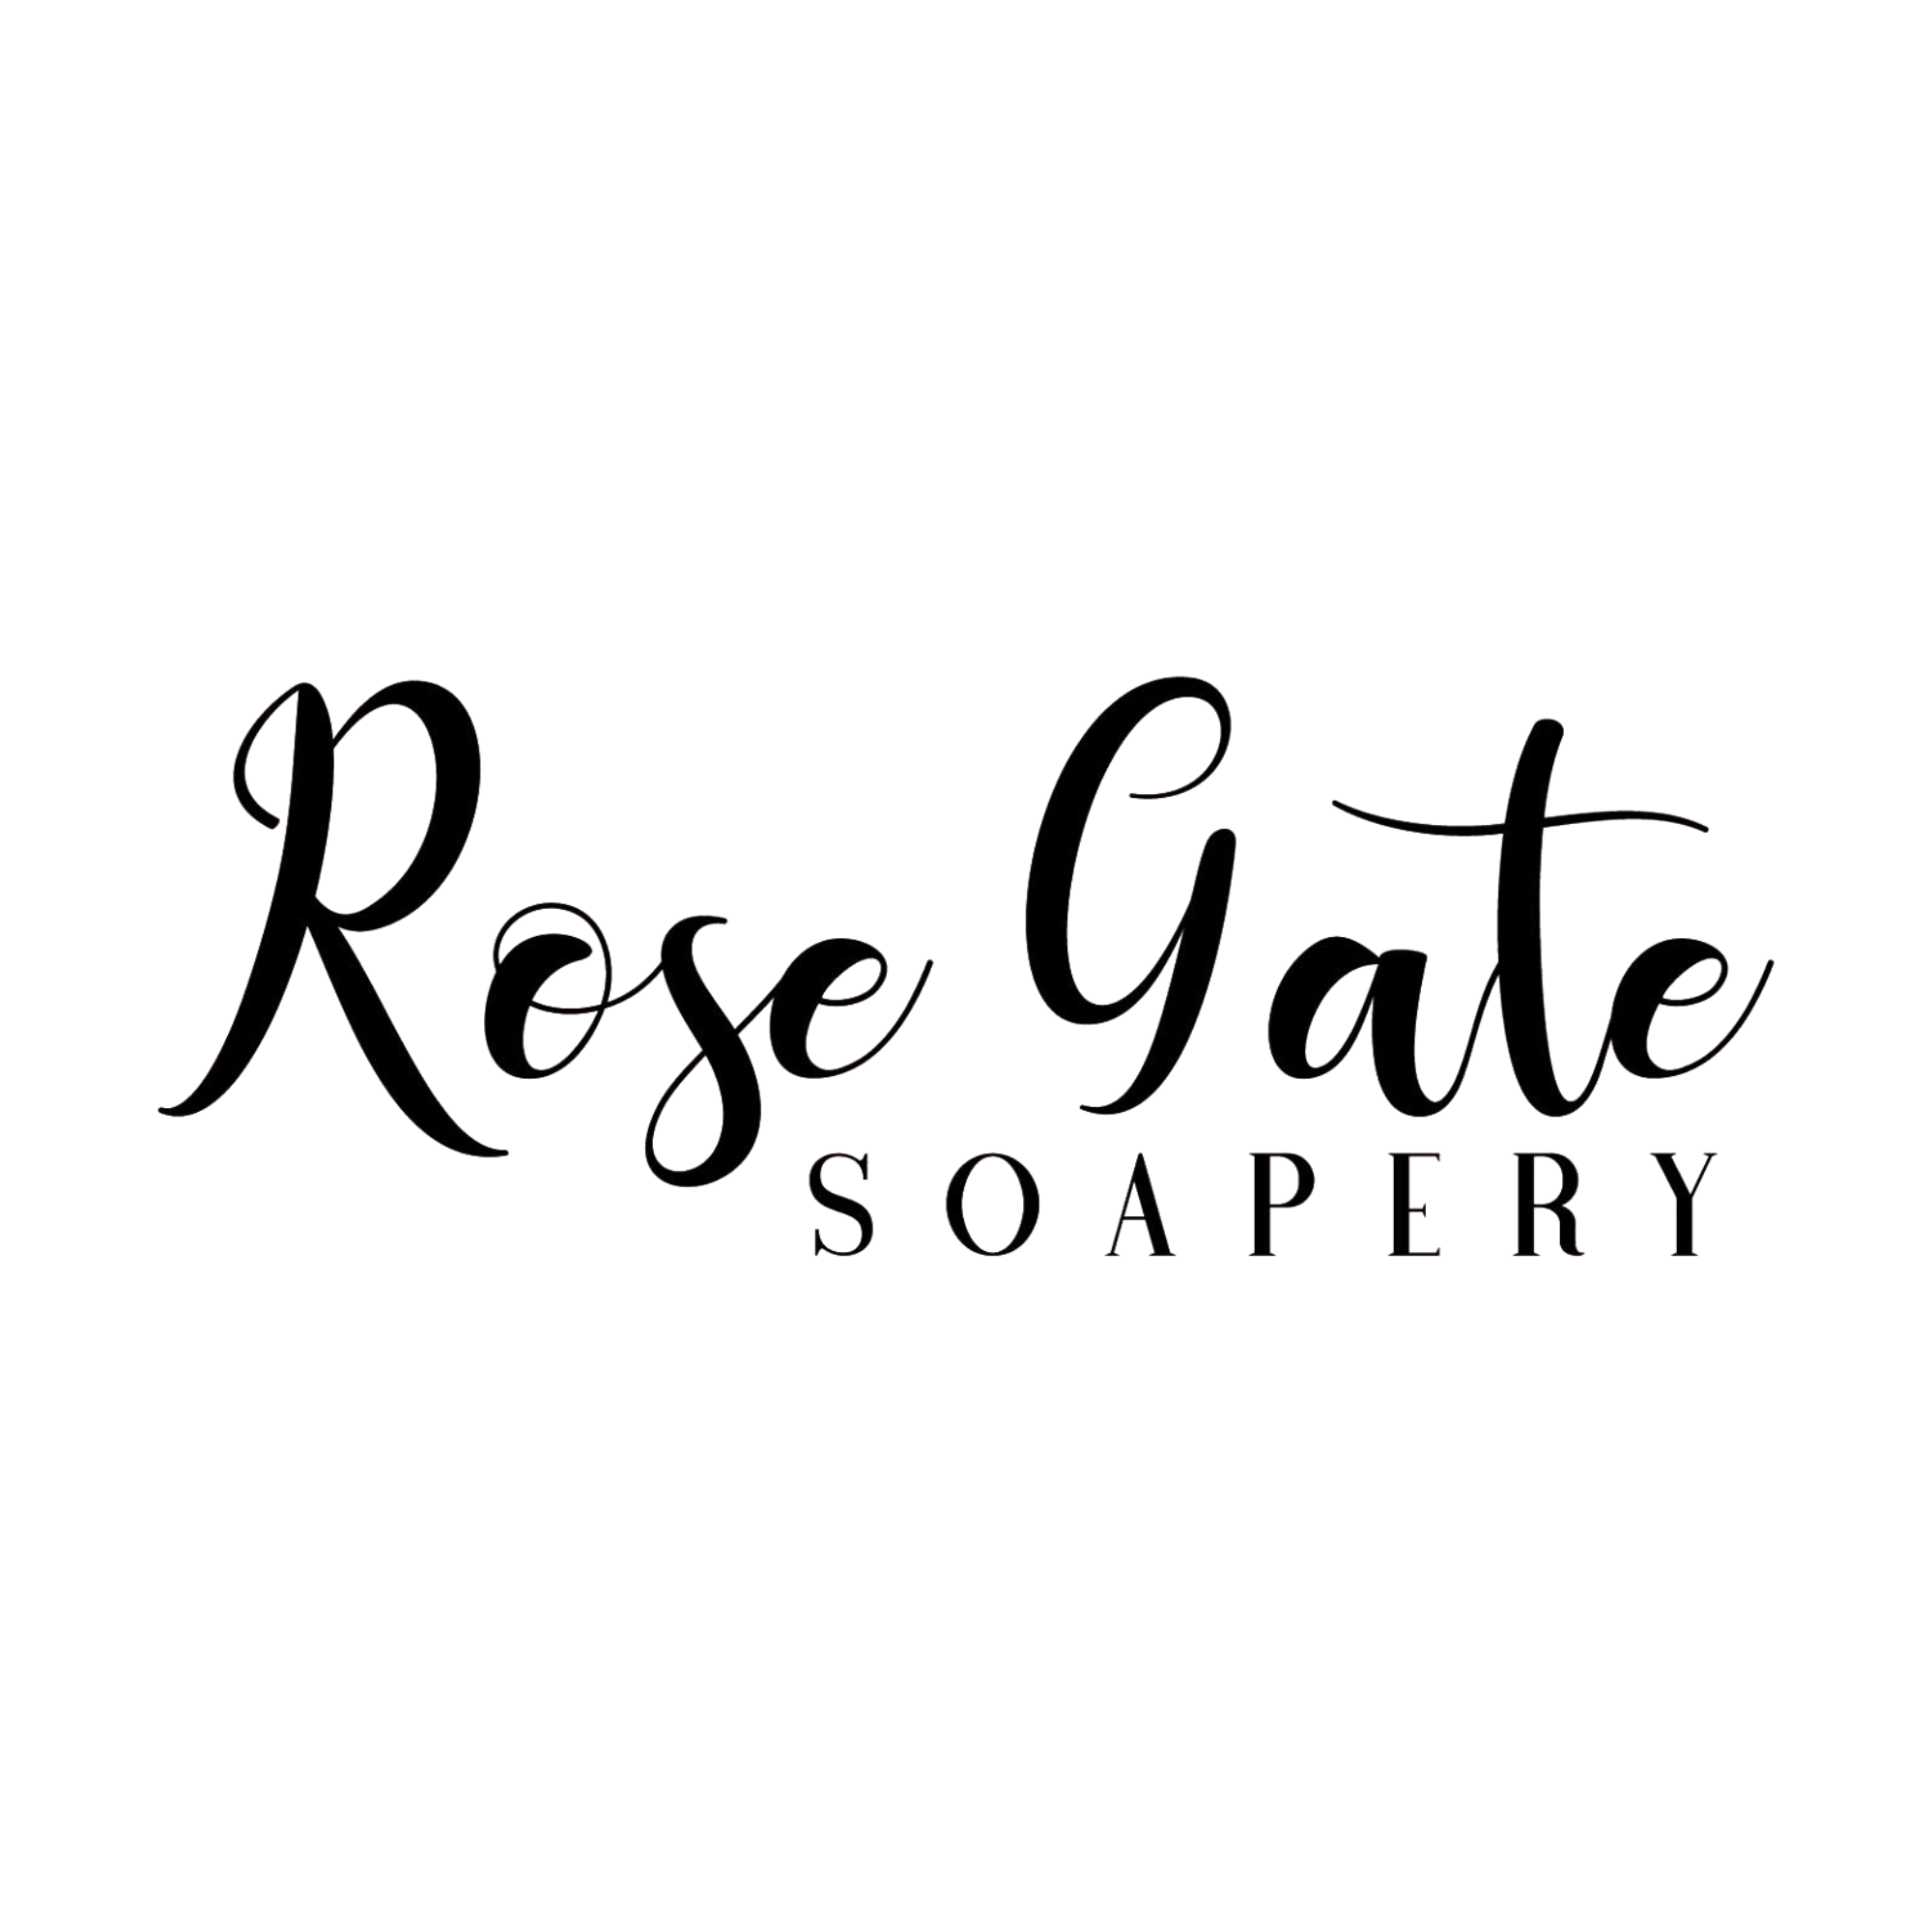 Rose Gate Soapery